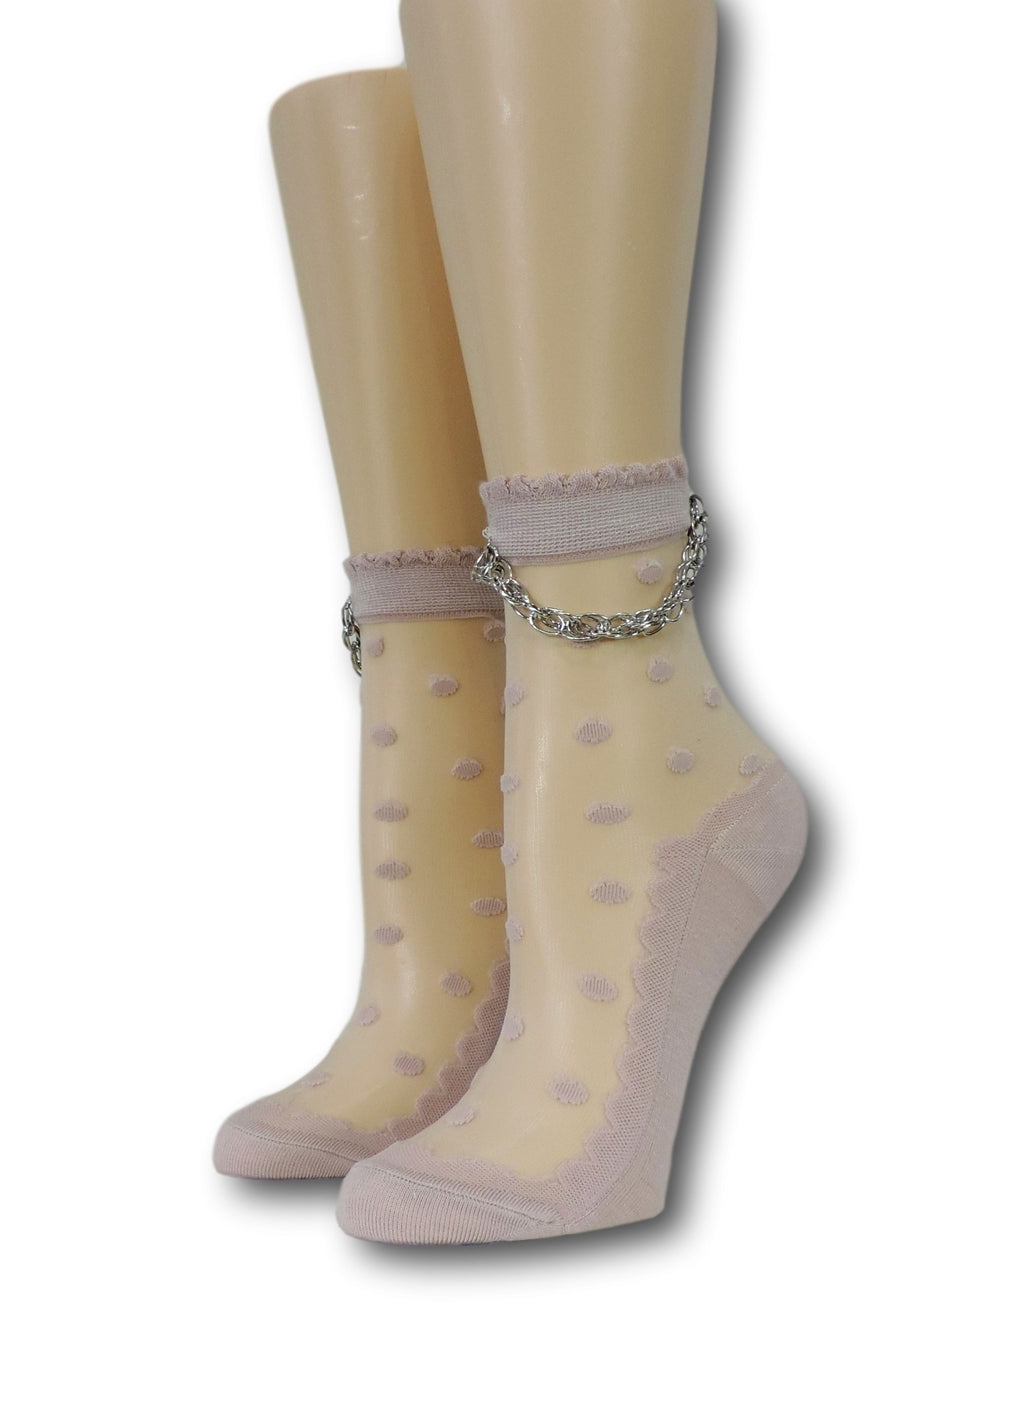 Pink Dotted Hip Hop Socks with Chain